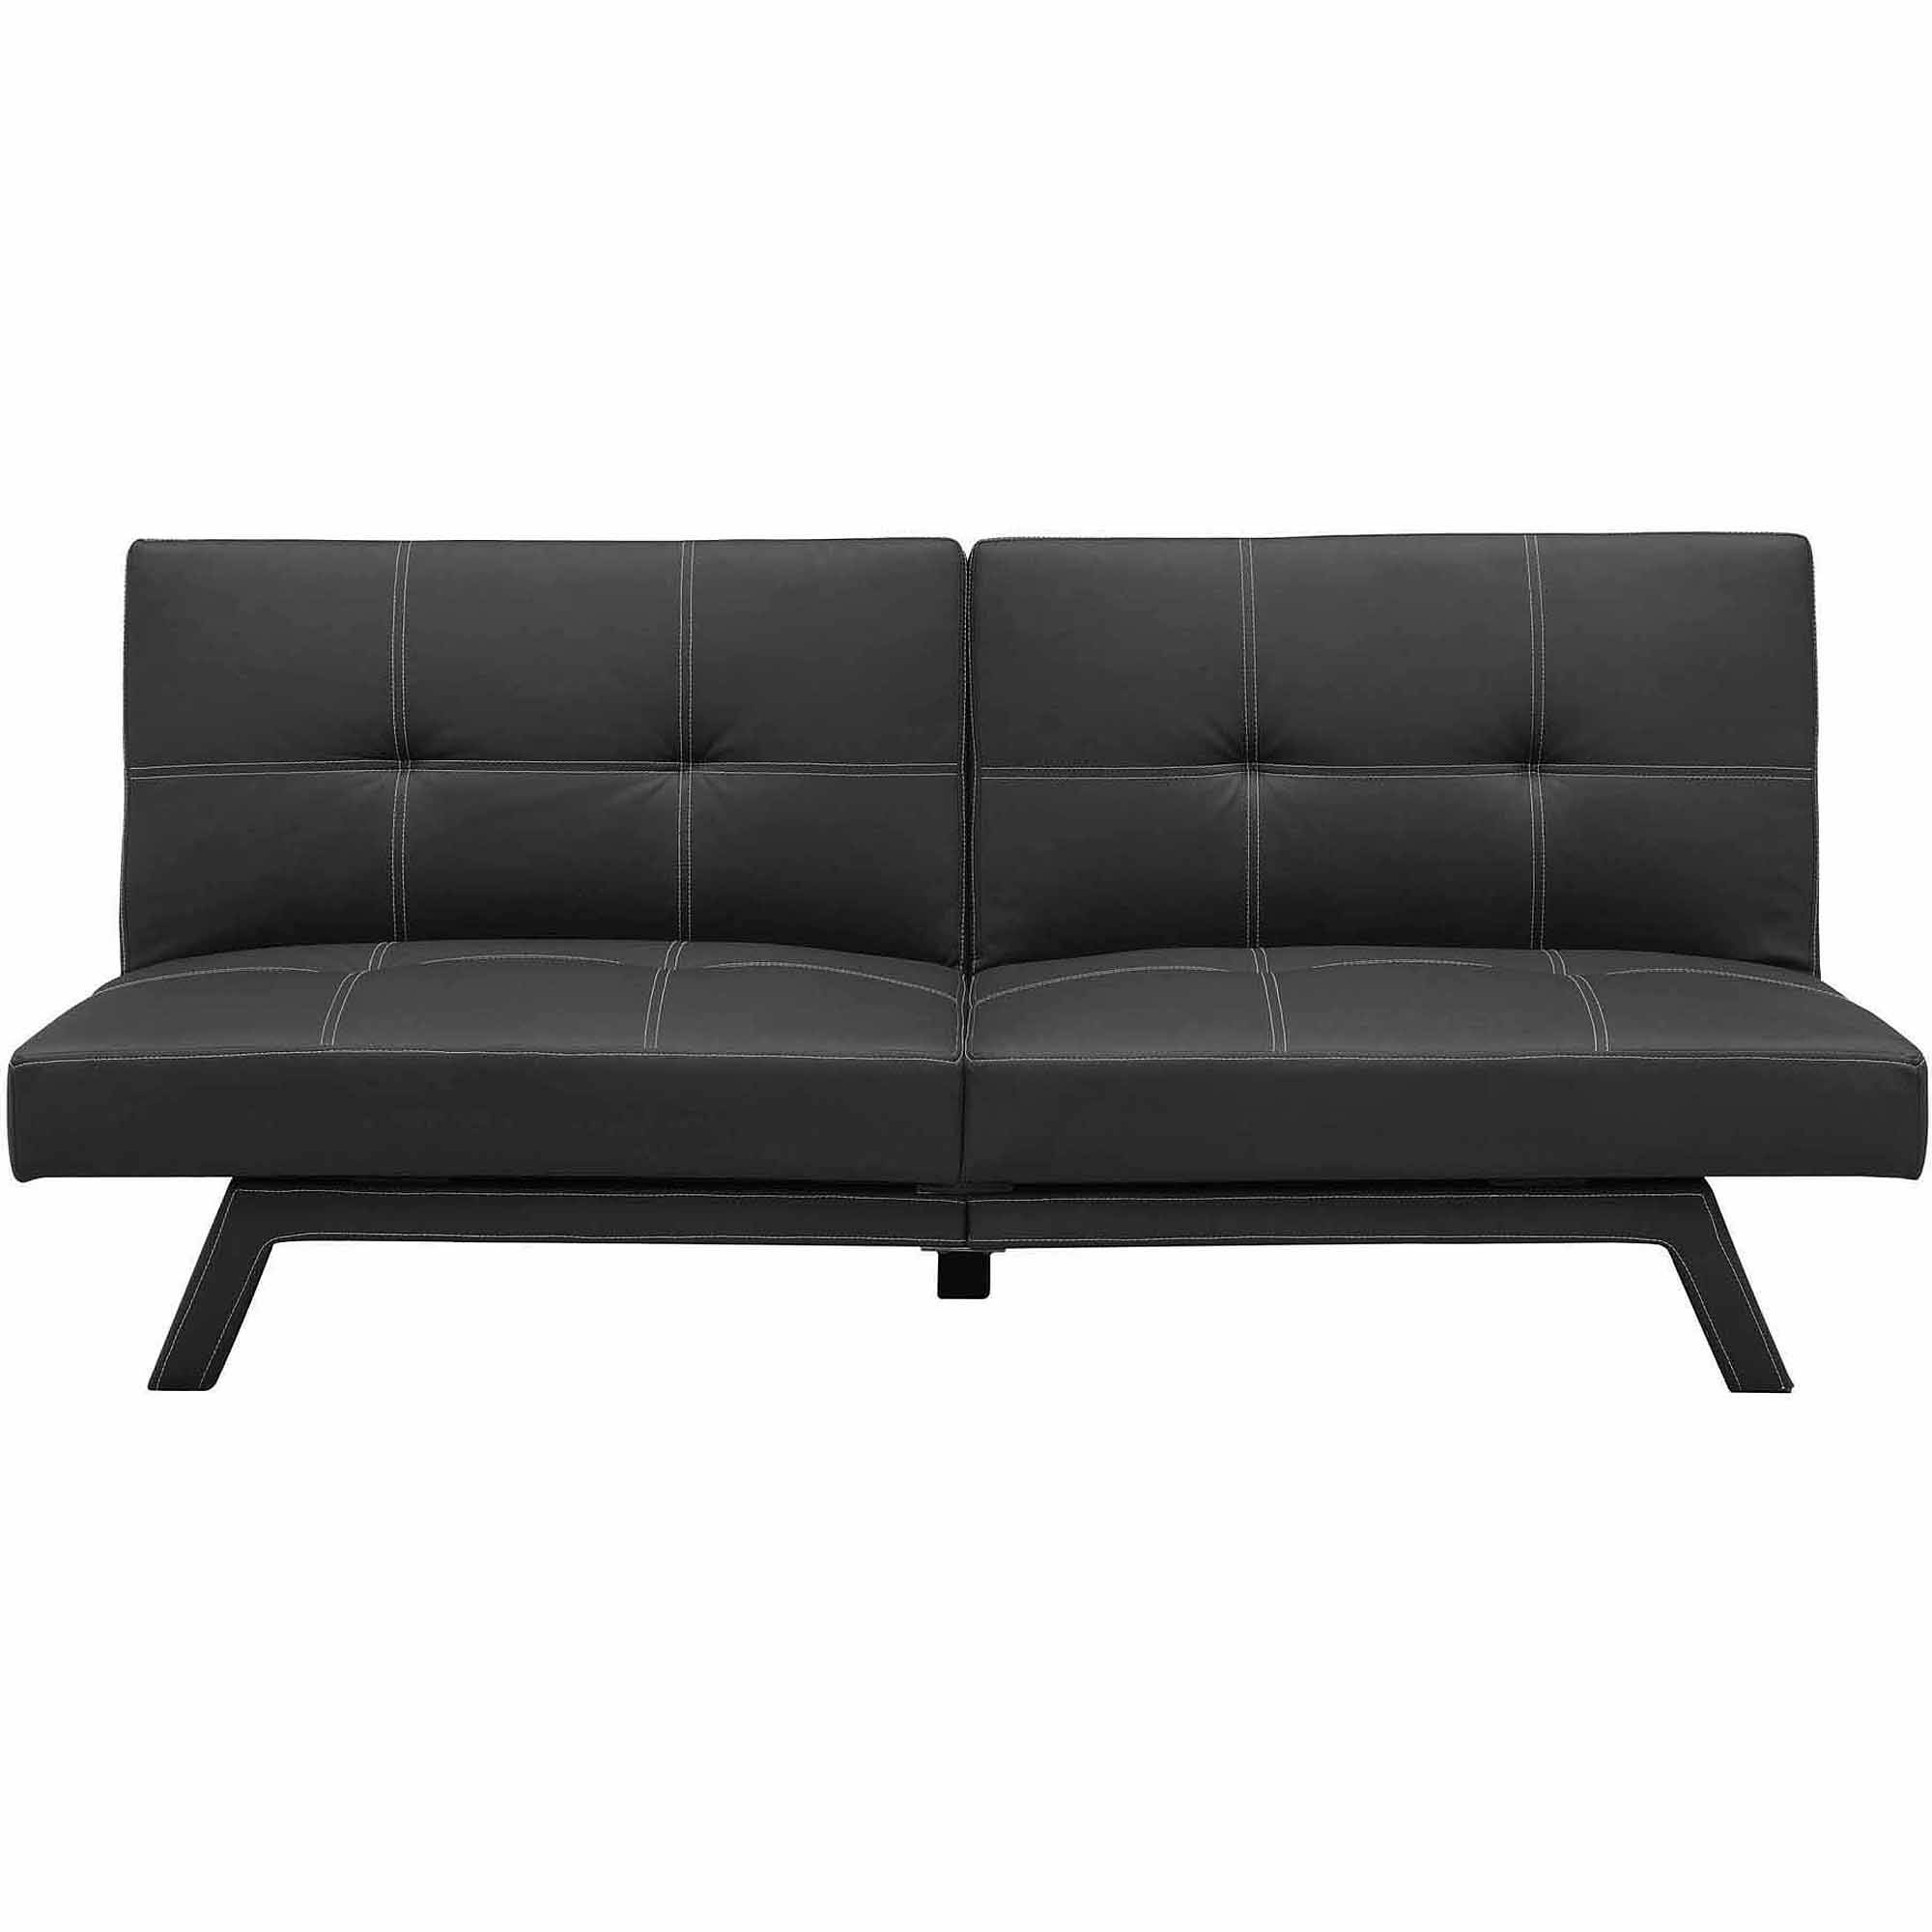 Furniture: Futon Kmart For Easily Convert To A Bed — Iahrapd2016 within Leather Fouton Sofas (Image 6 of 15)